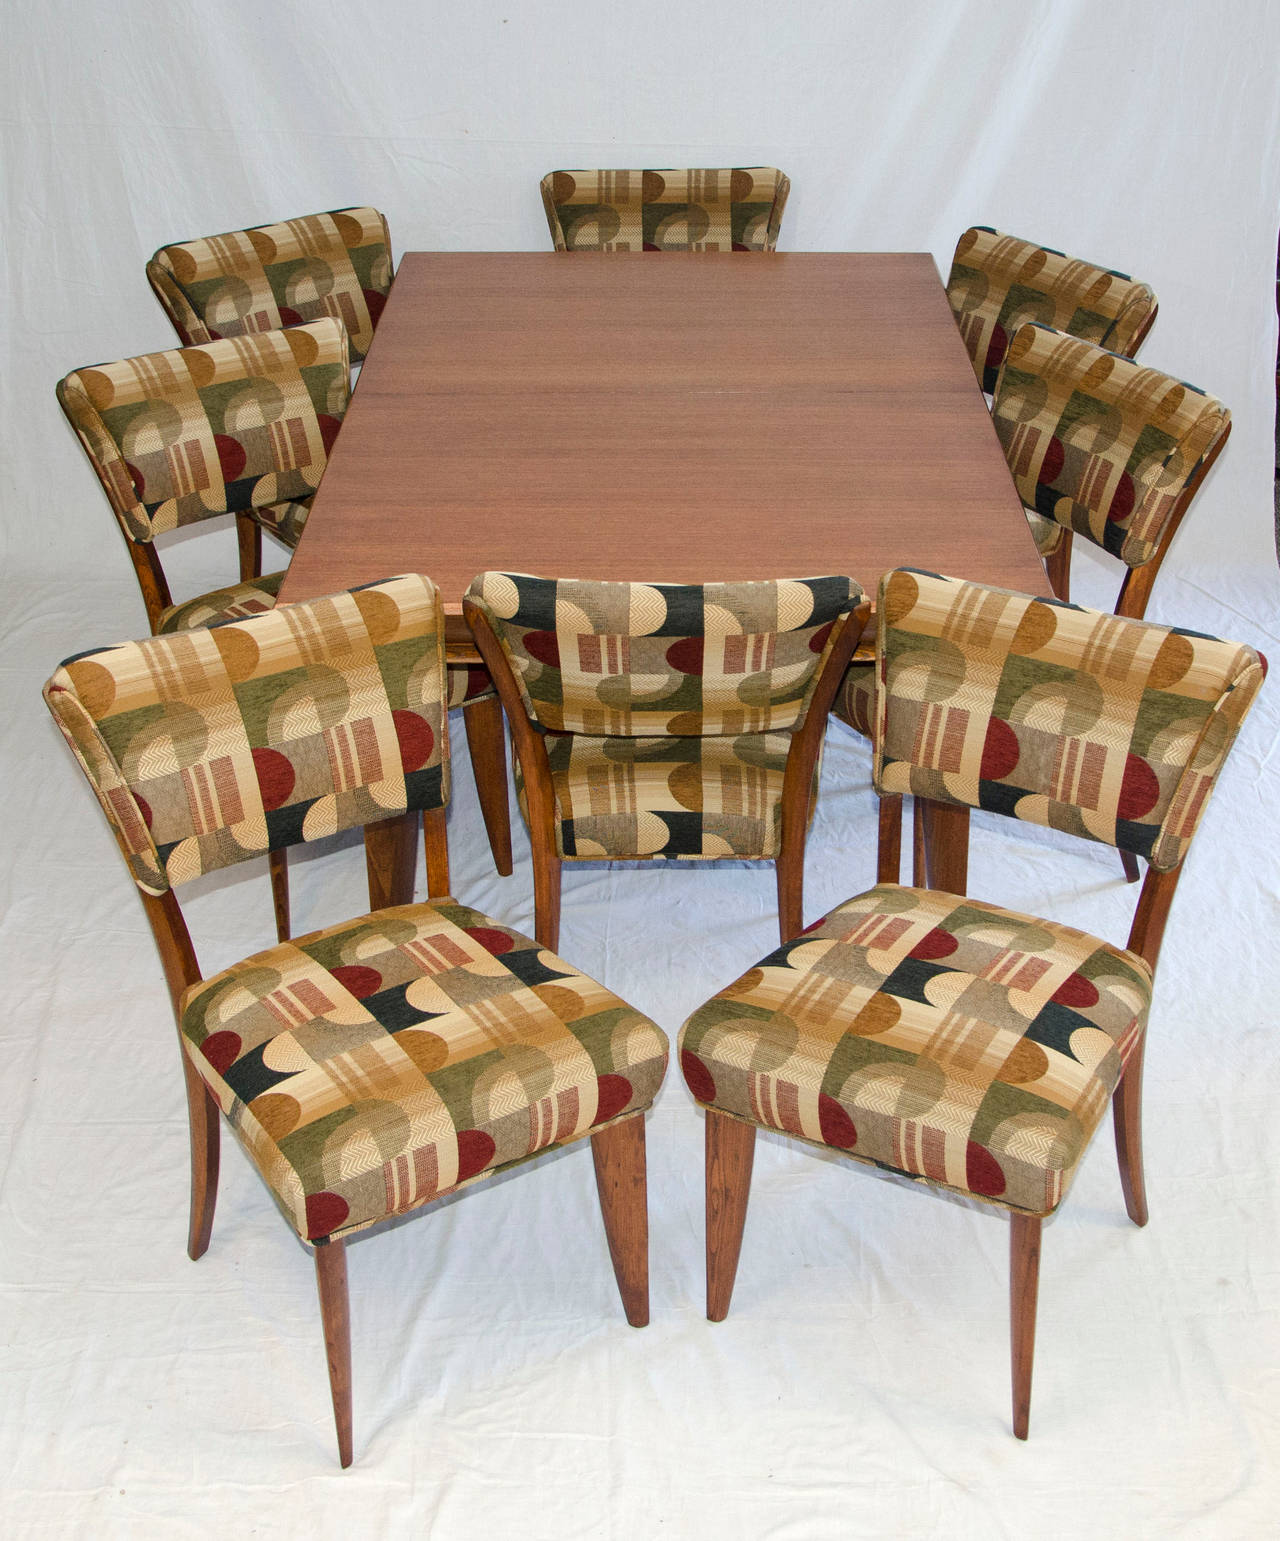 Mid Century Dining Room Table and Chairs by Paul Laszlo for Brown Saltman 3